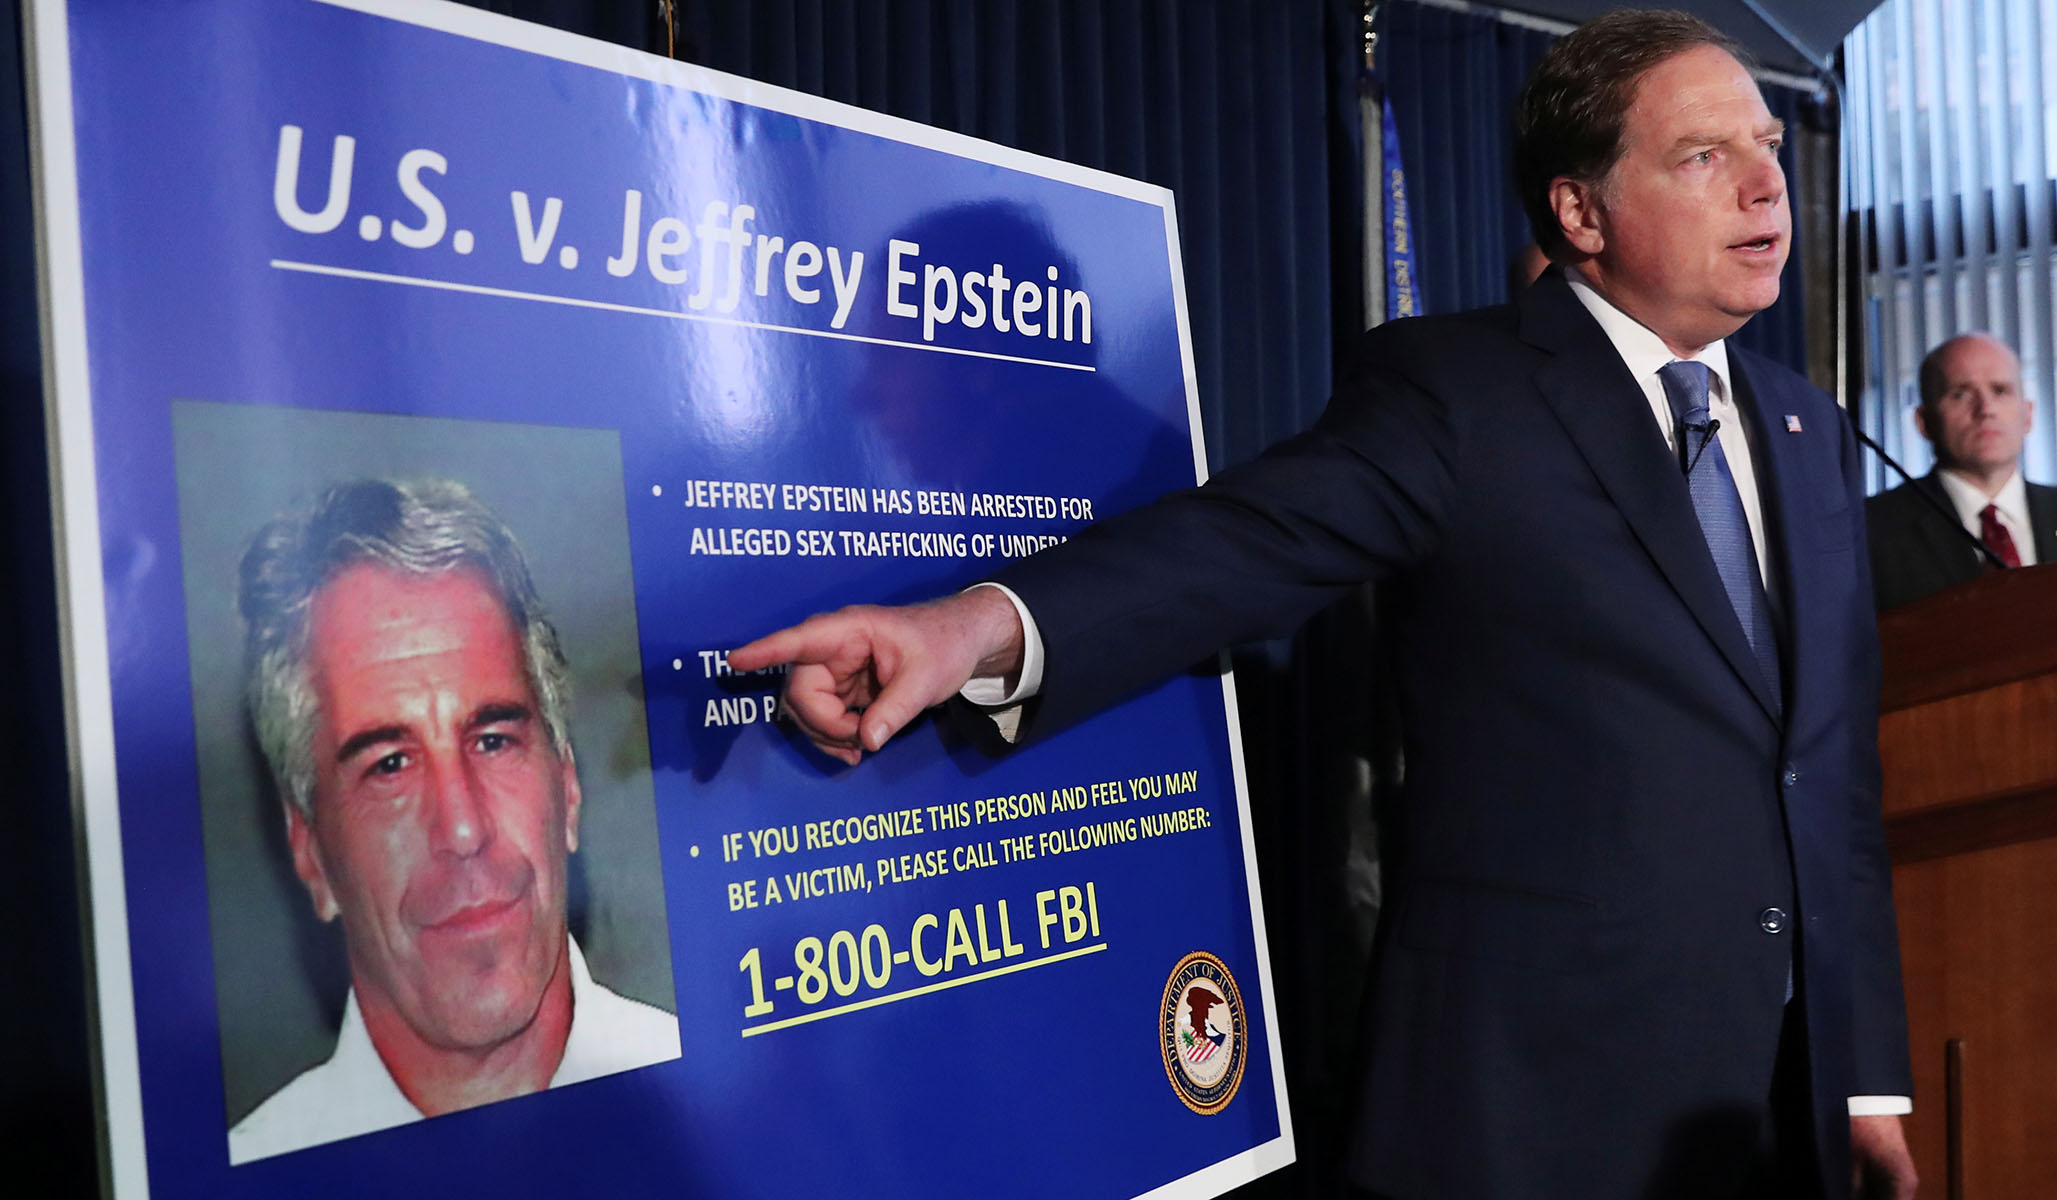 'Epstein Didn't Kill Himself'